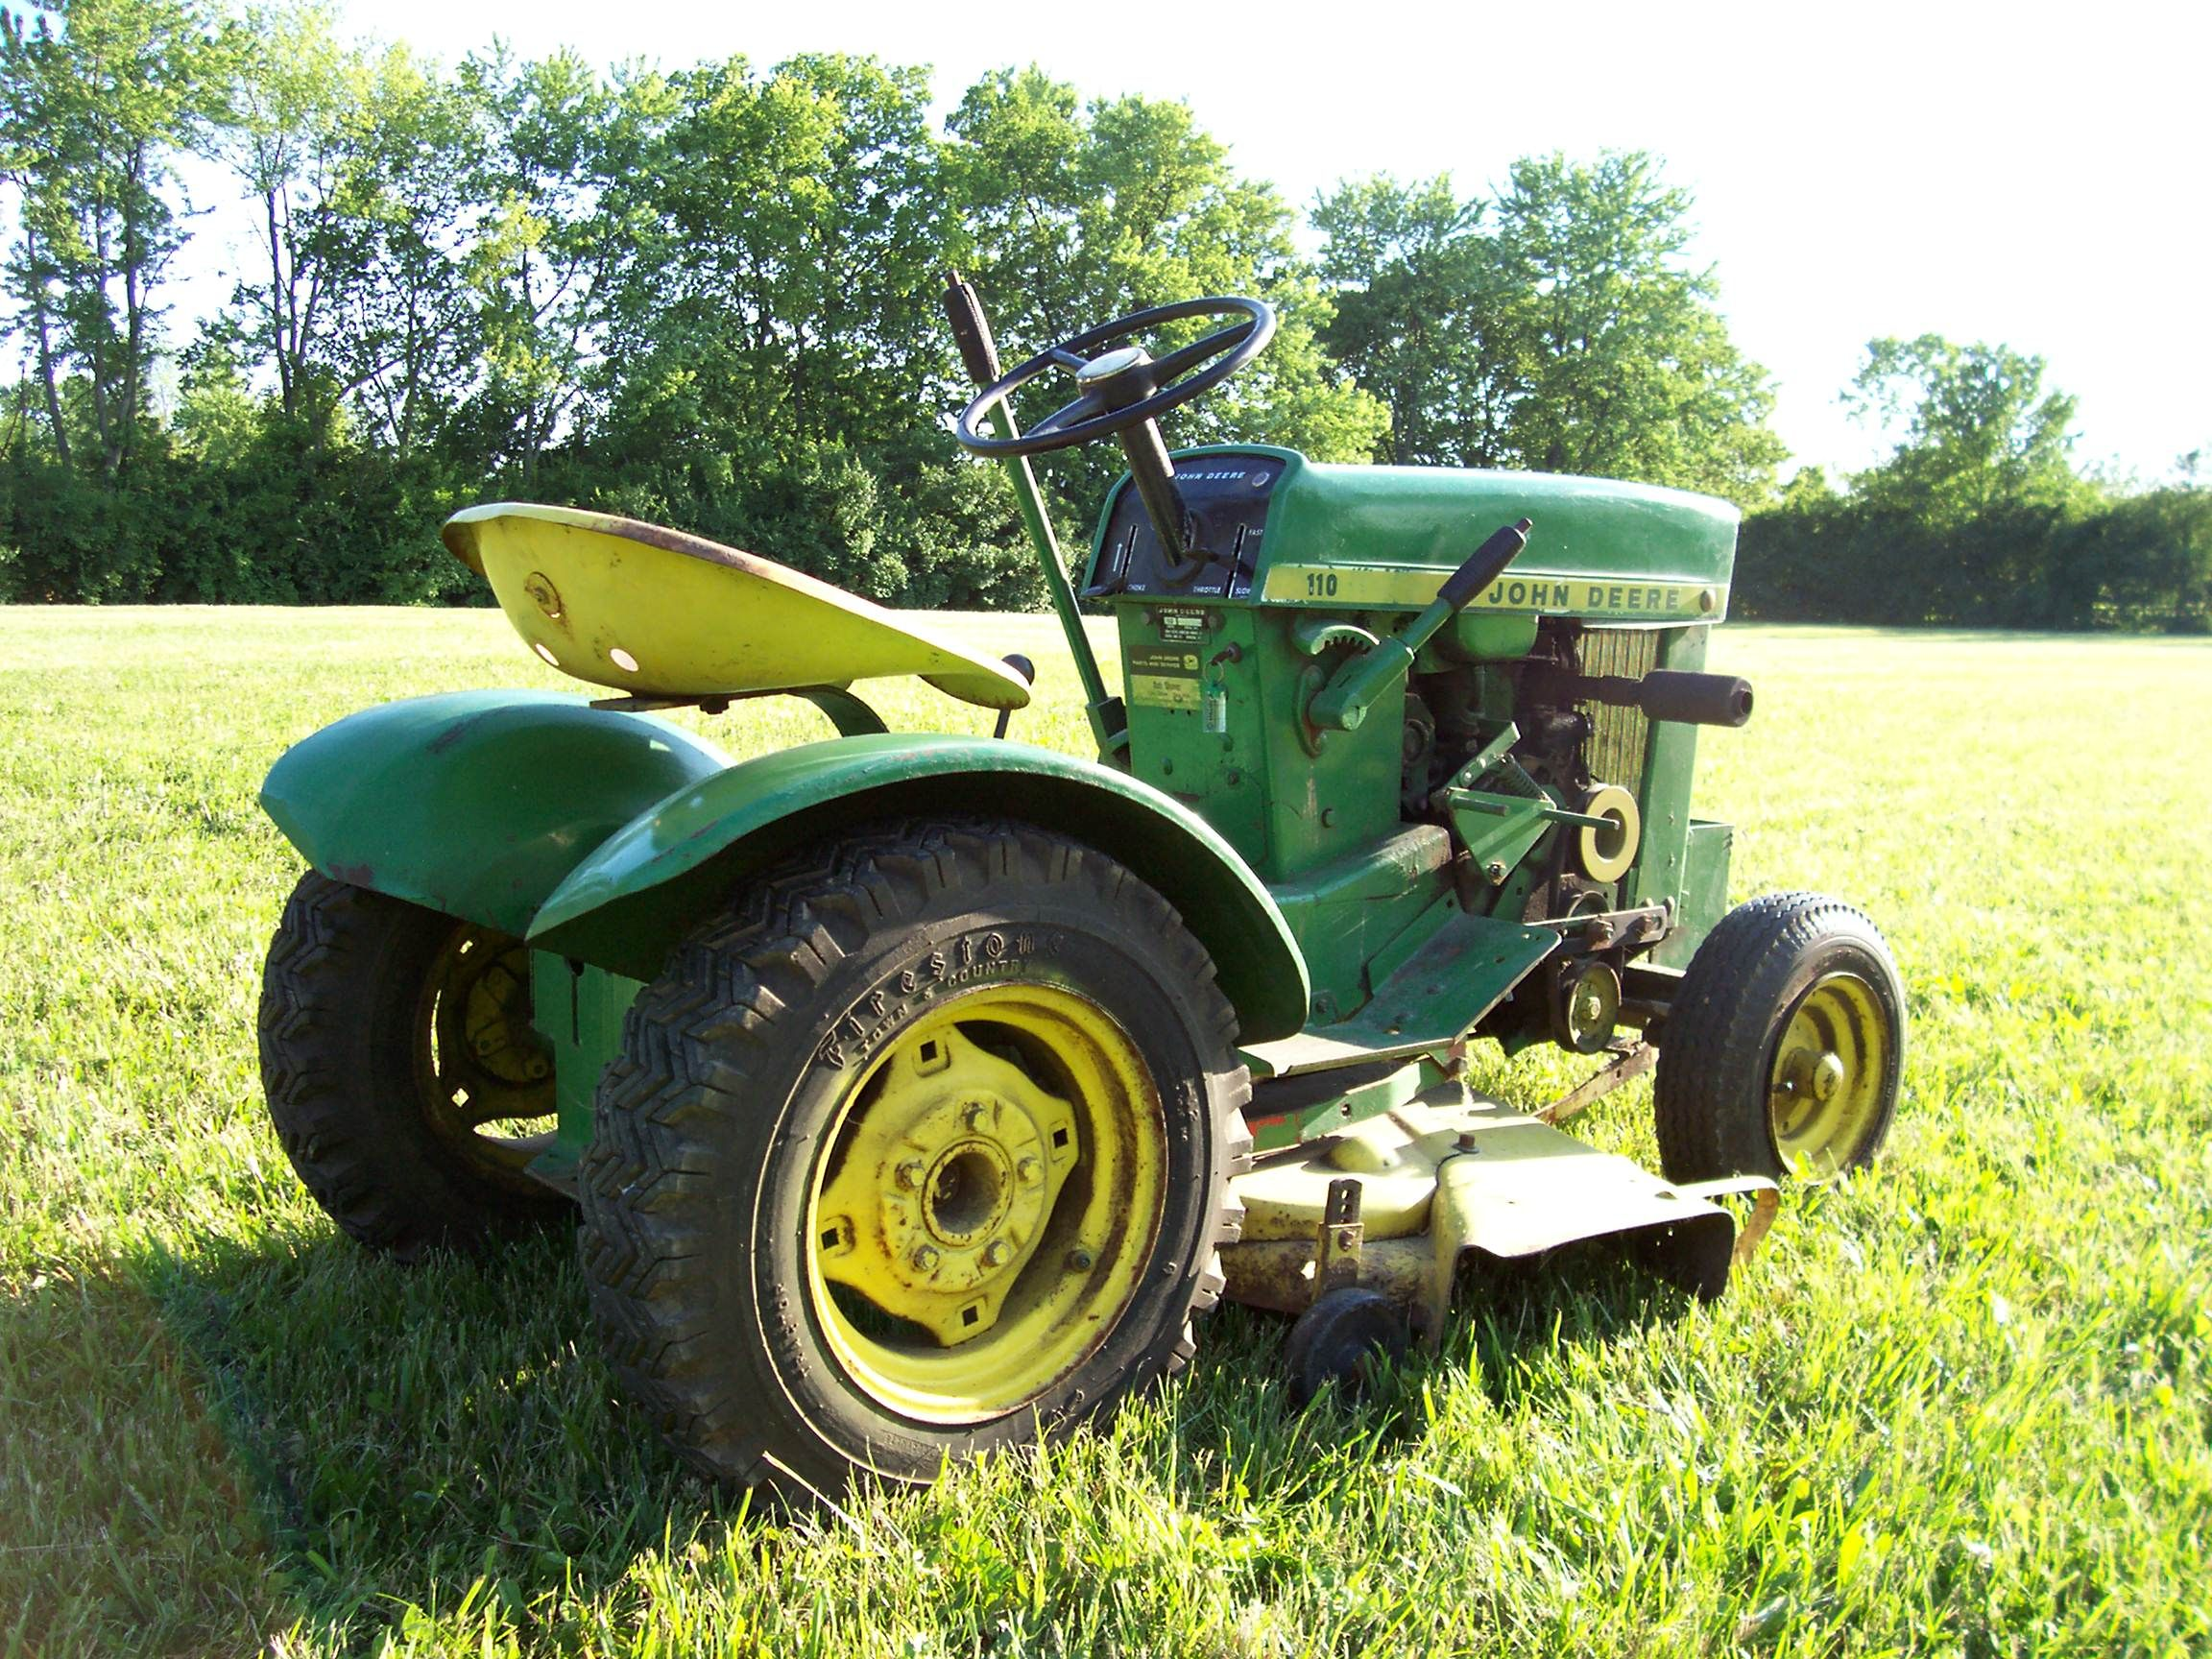 steer deck meter deere v all electronic kawasaki tractors injection john sn lawn wheel on and twin fuel garden